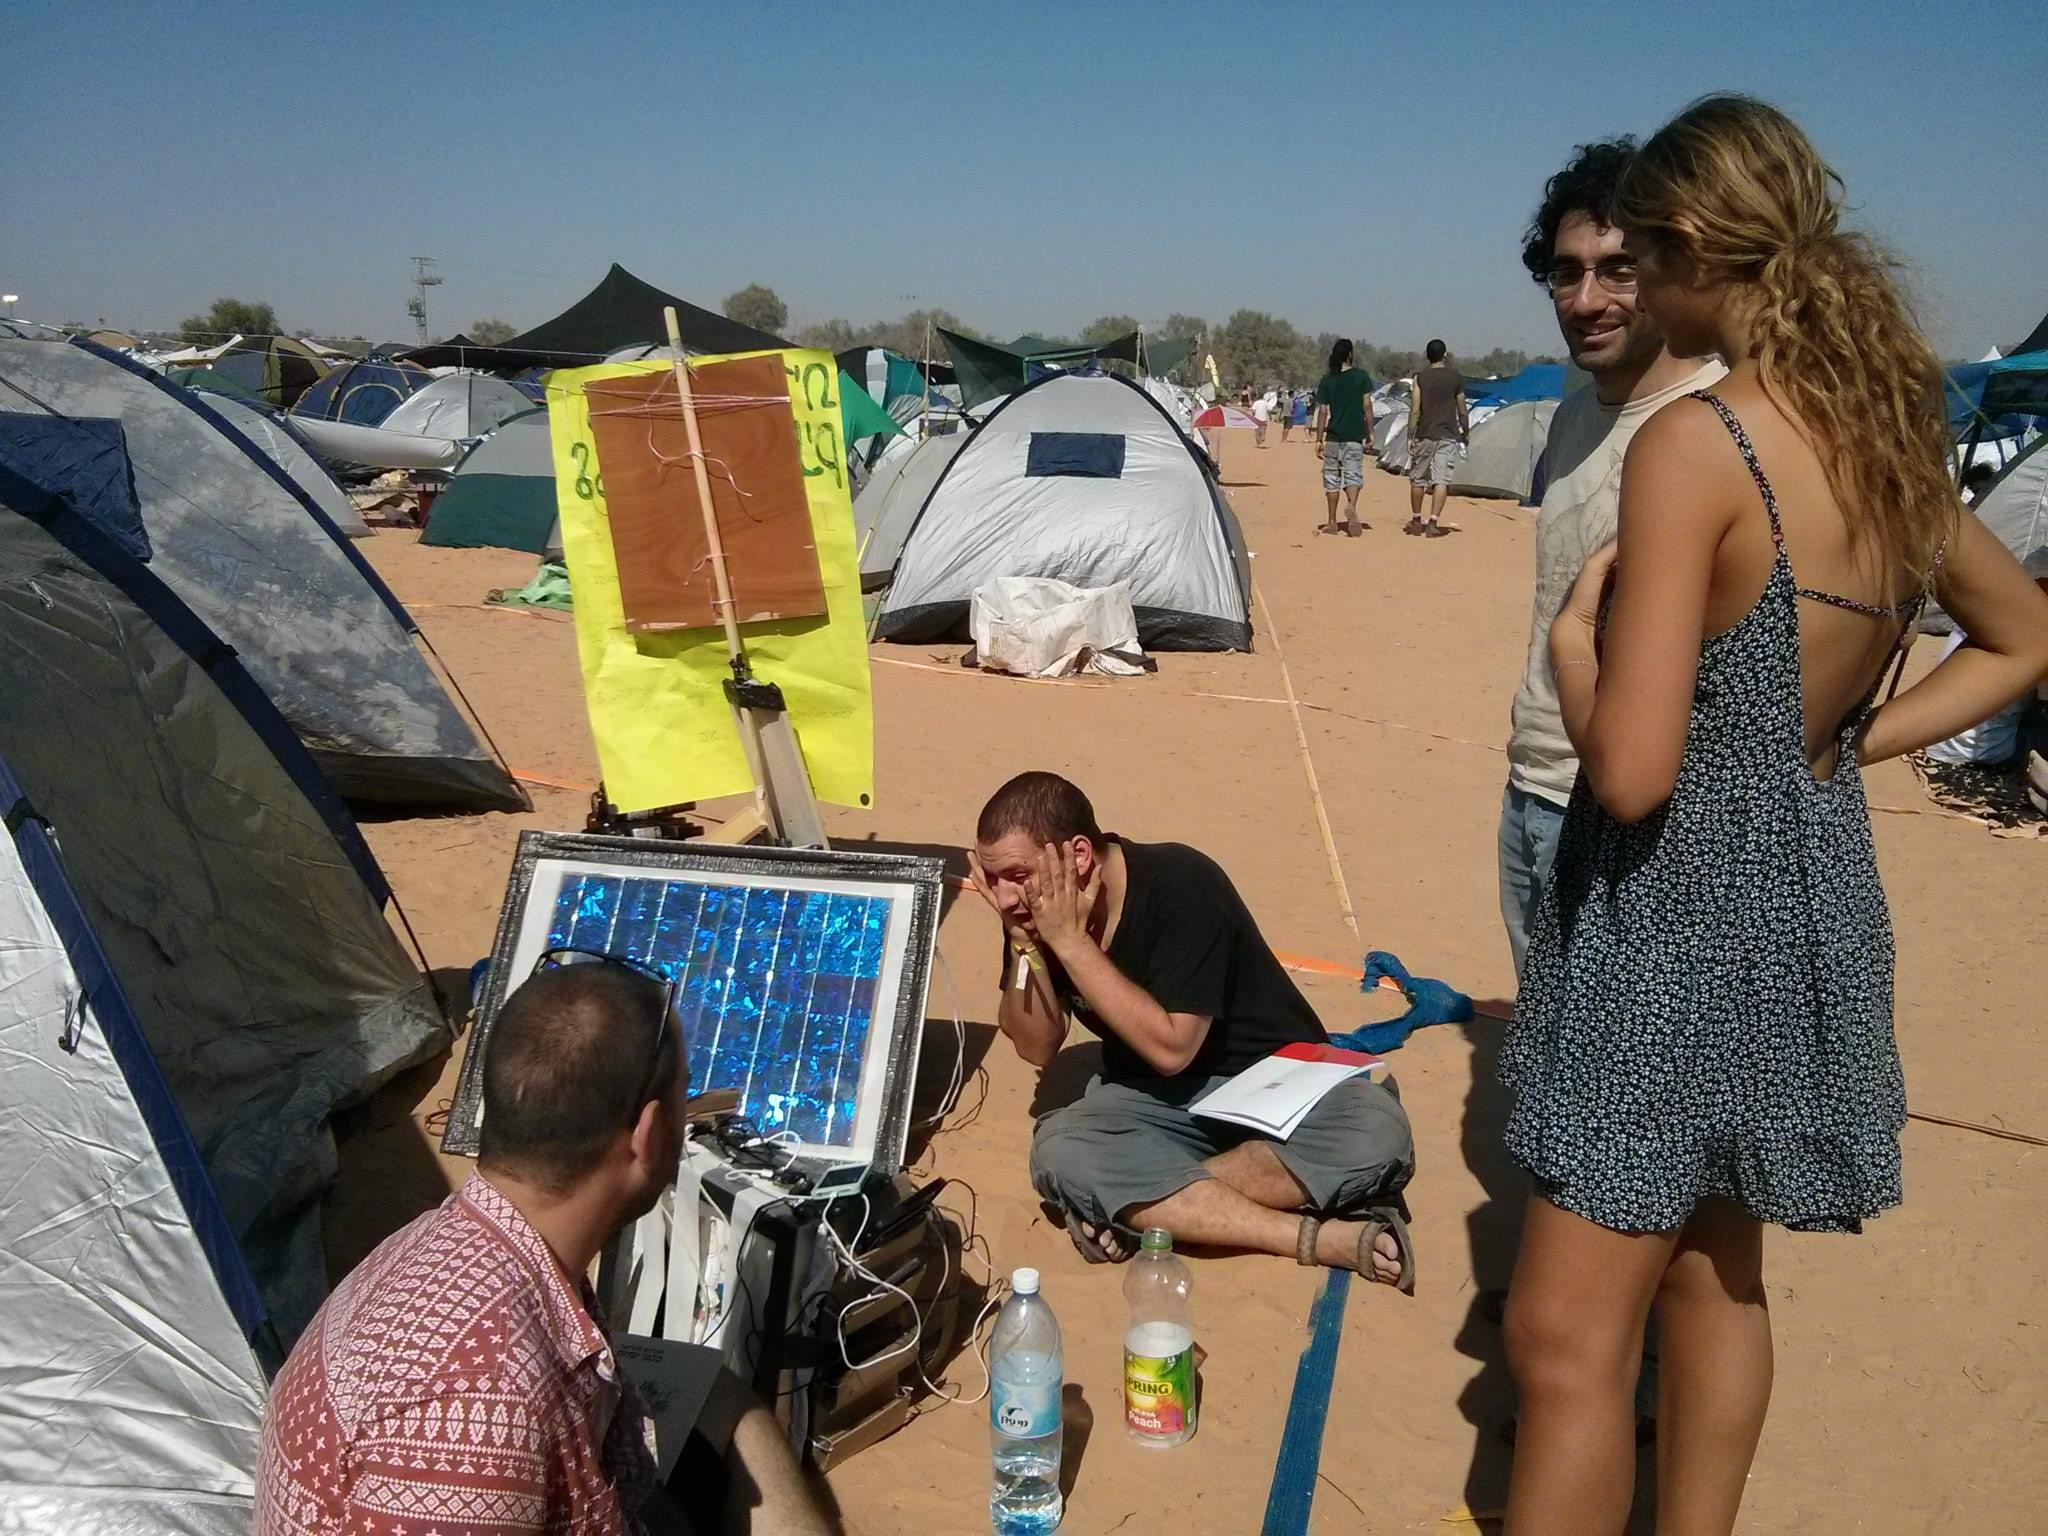 solar phone charging station - In the festival